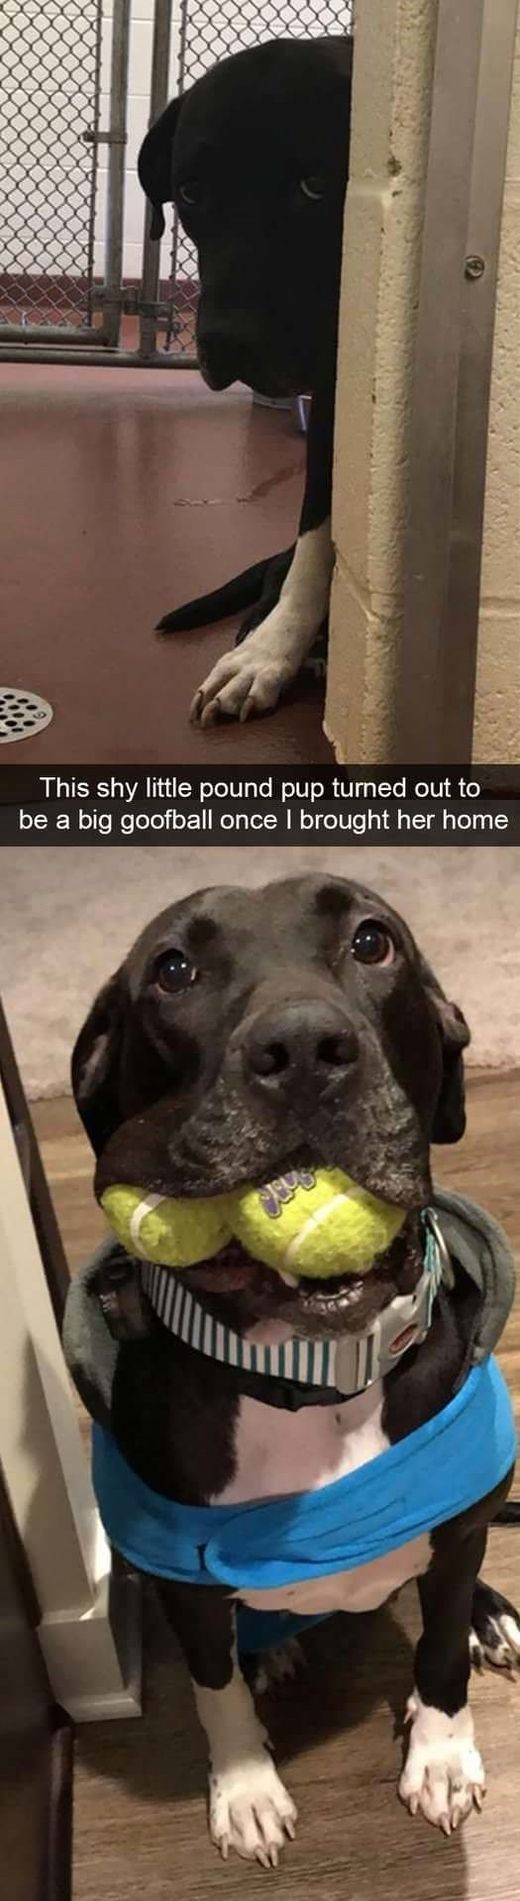 Funny Snapchats Dog Photo – 30 New Images – #Pictures #Funny #new #snapchat #SnapchatsDog Photo